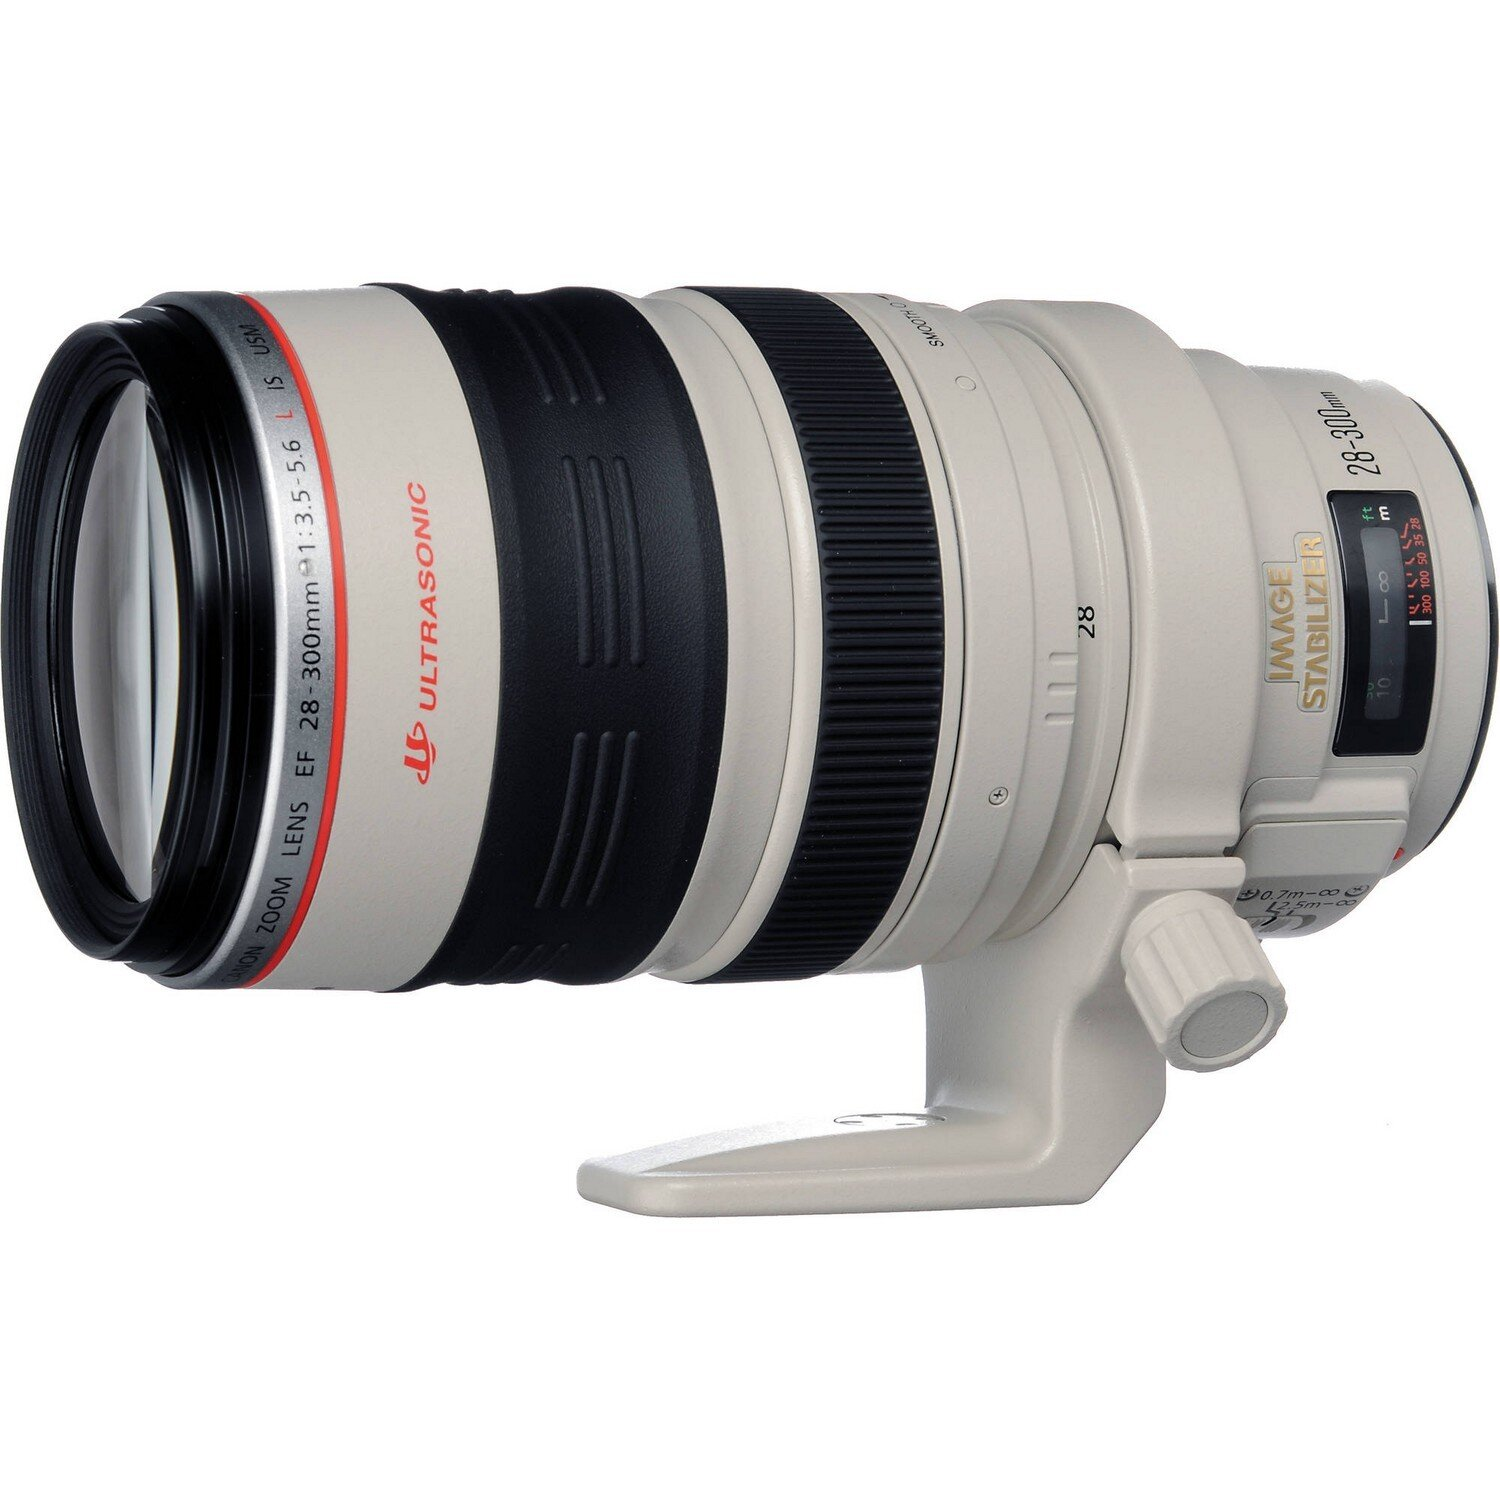 Canon EF 28-300mm f/3.5-5.6L IS USM